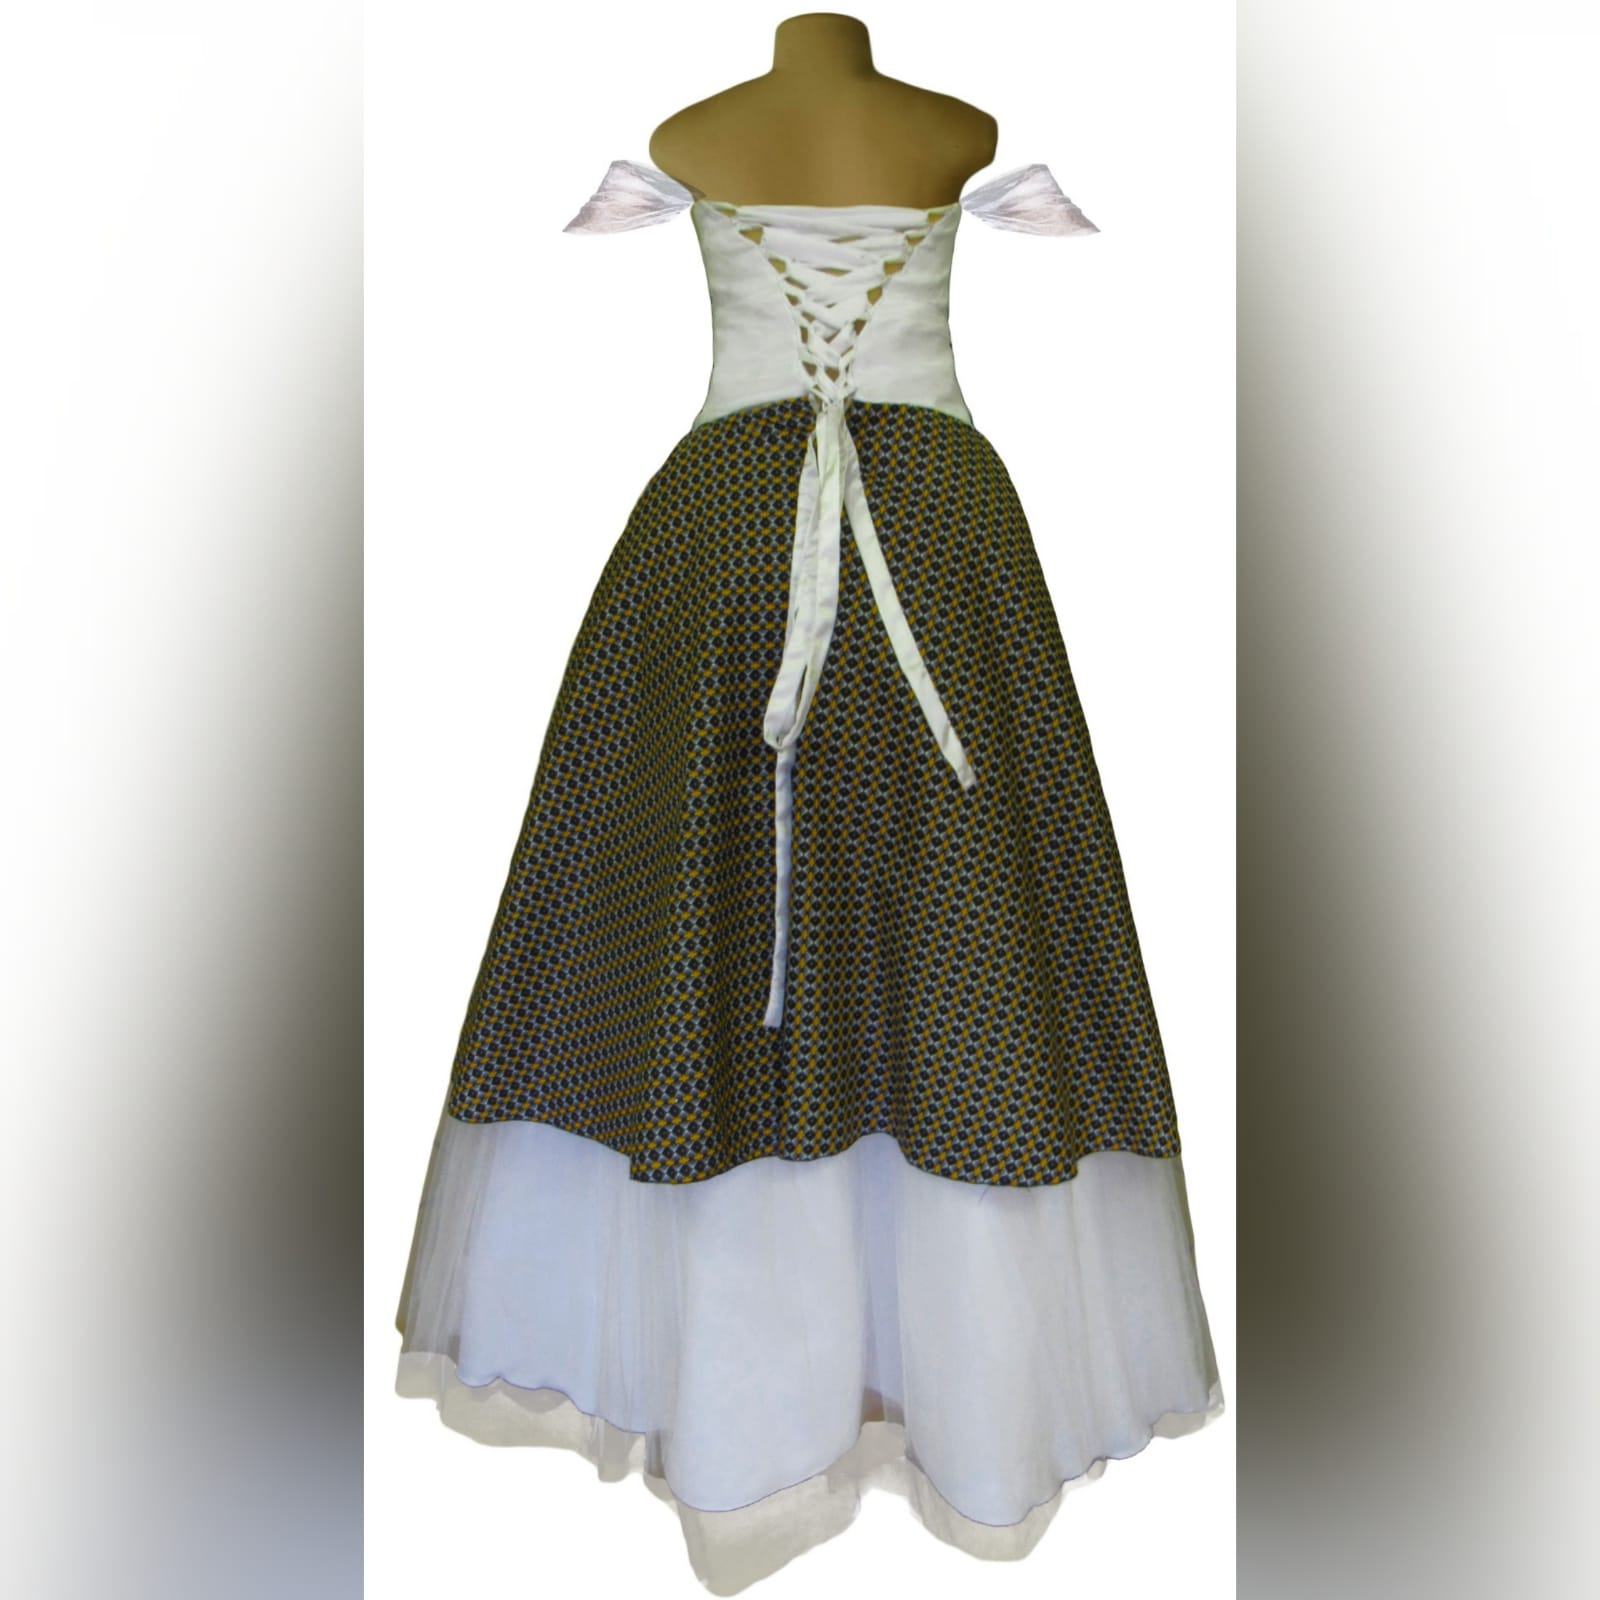 White and brown african traditional wedding dress 5 white and brown african traditional wedding dress. Sweetheart neckline, off shoulder tulle straps with a tulle skirt and an overlayer of african traditional fabric. Grooms matching blazer and bowtie.